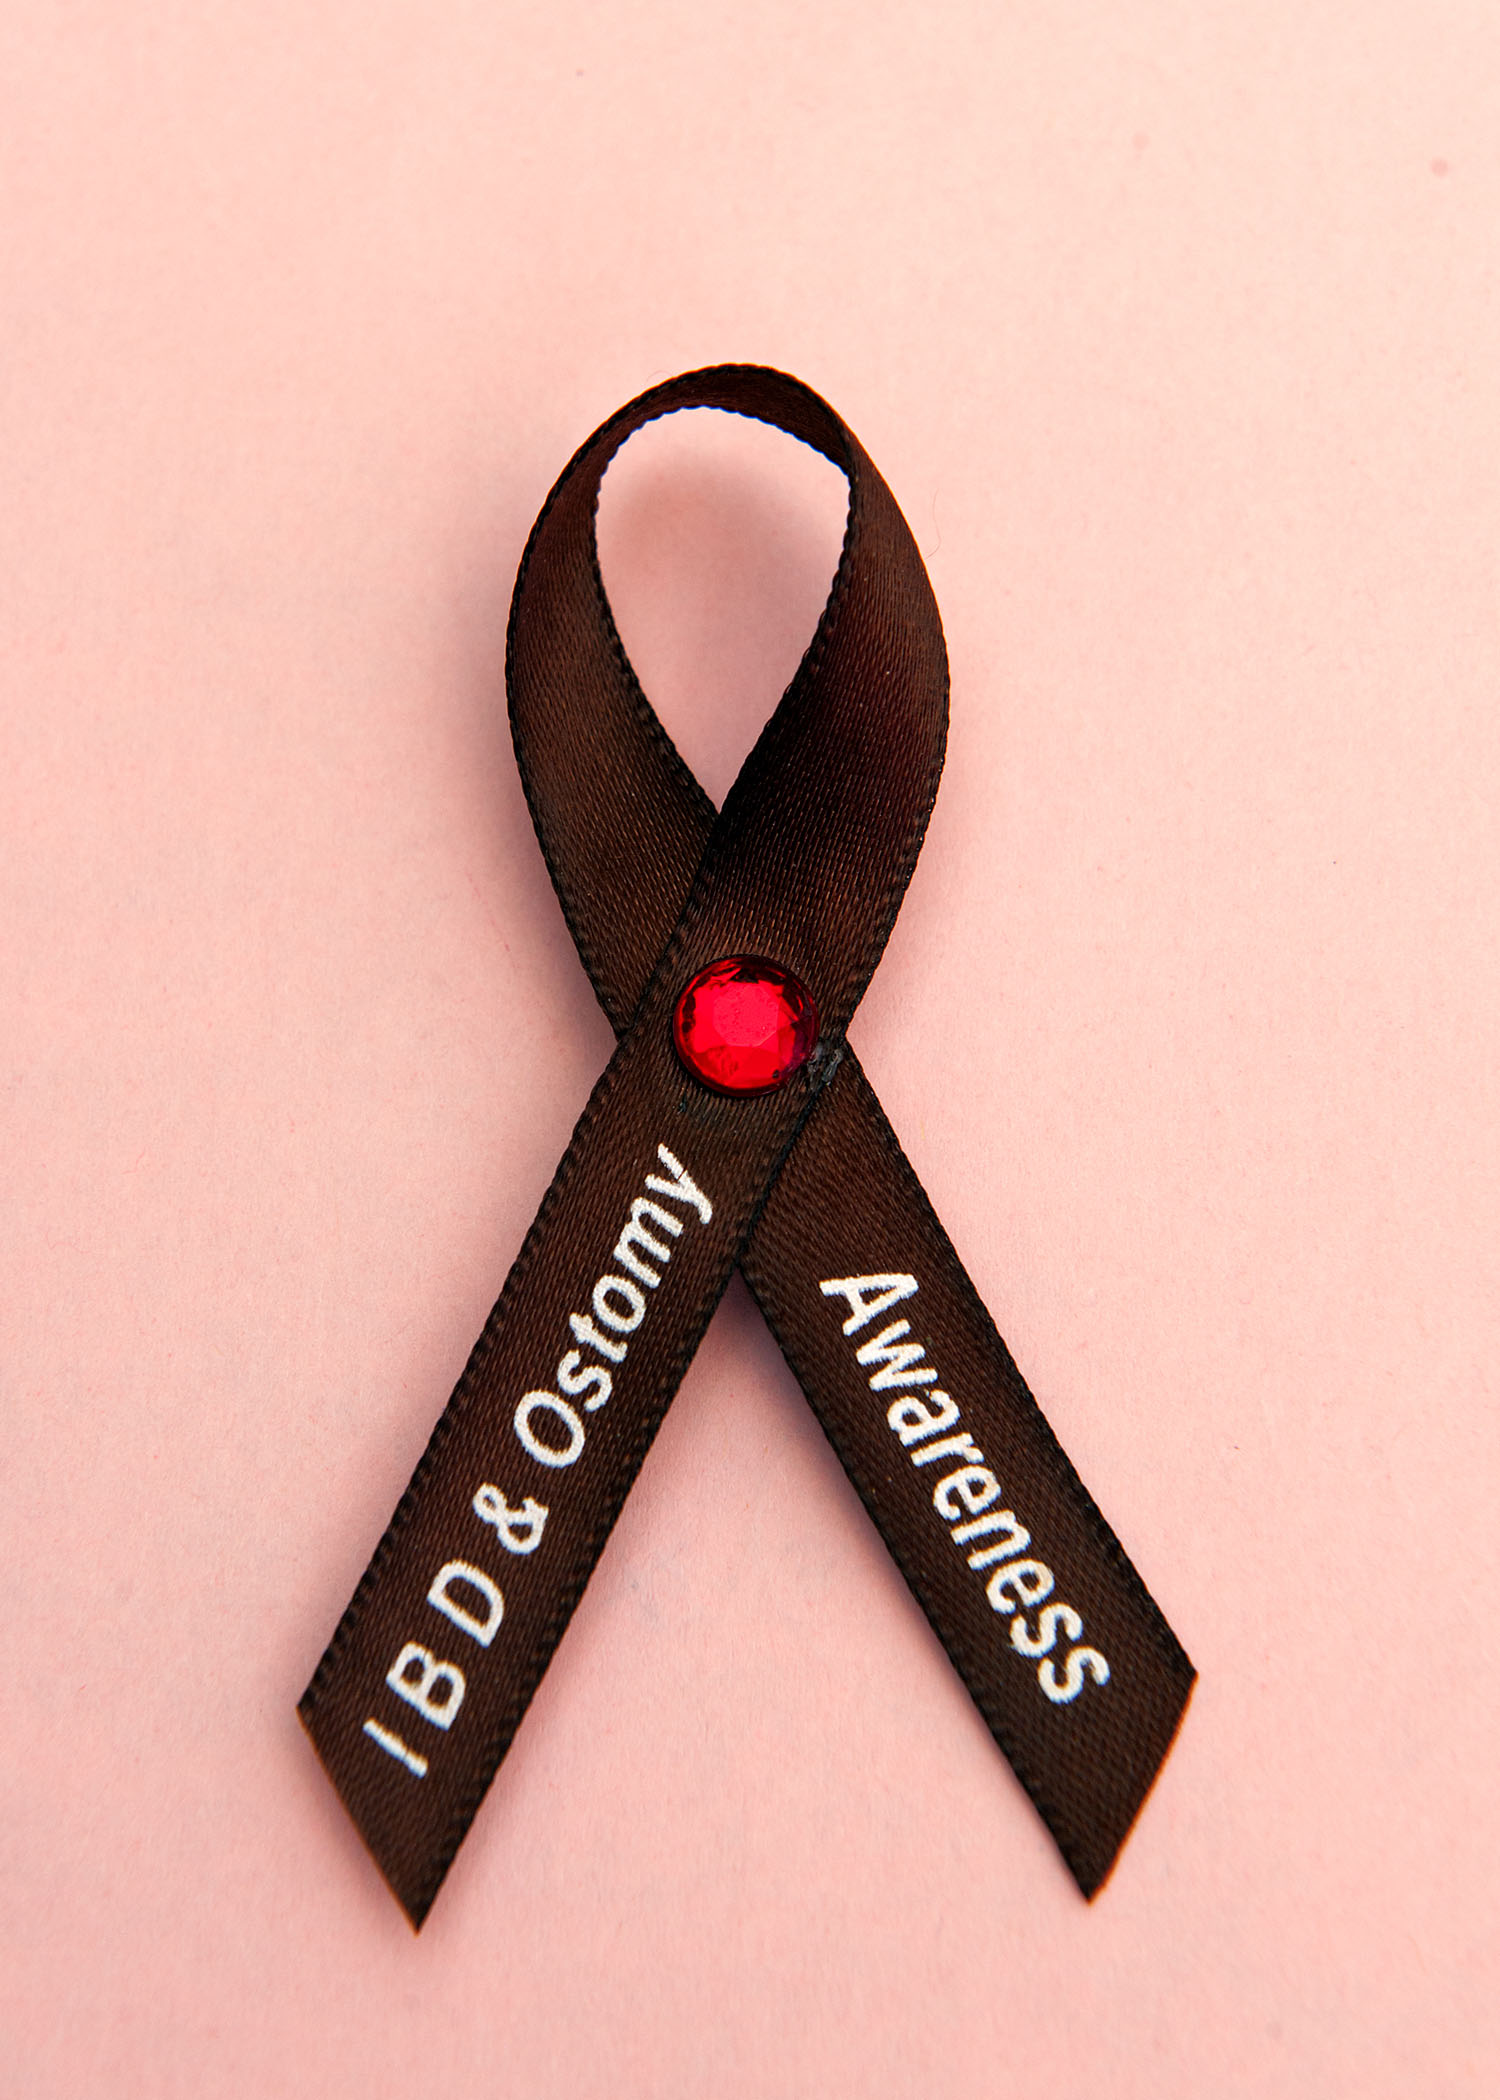 The ribbon for inflammatory bowel disease and ostomy surgery awareness.